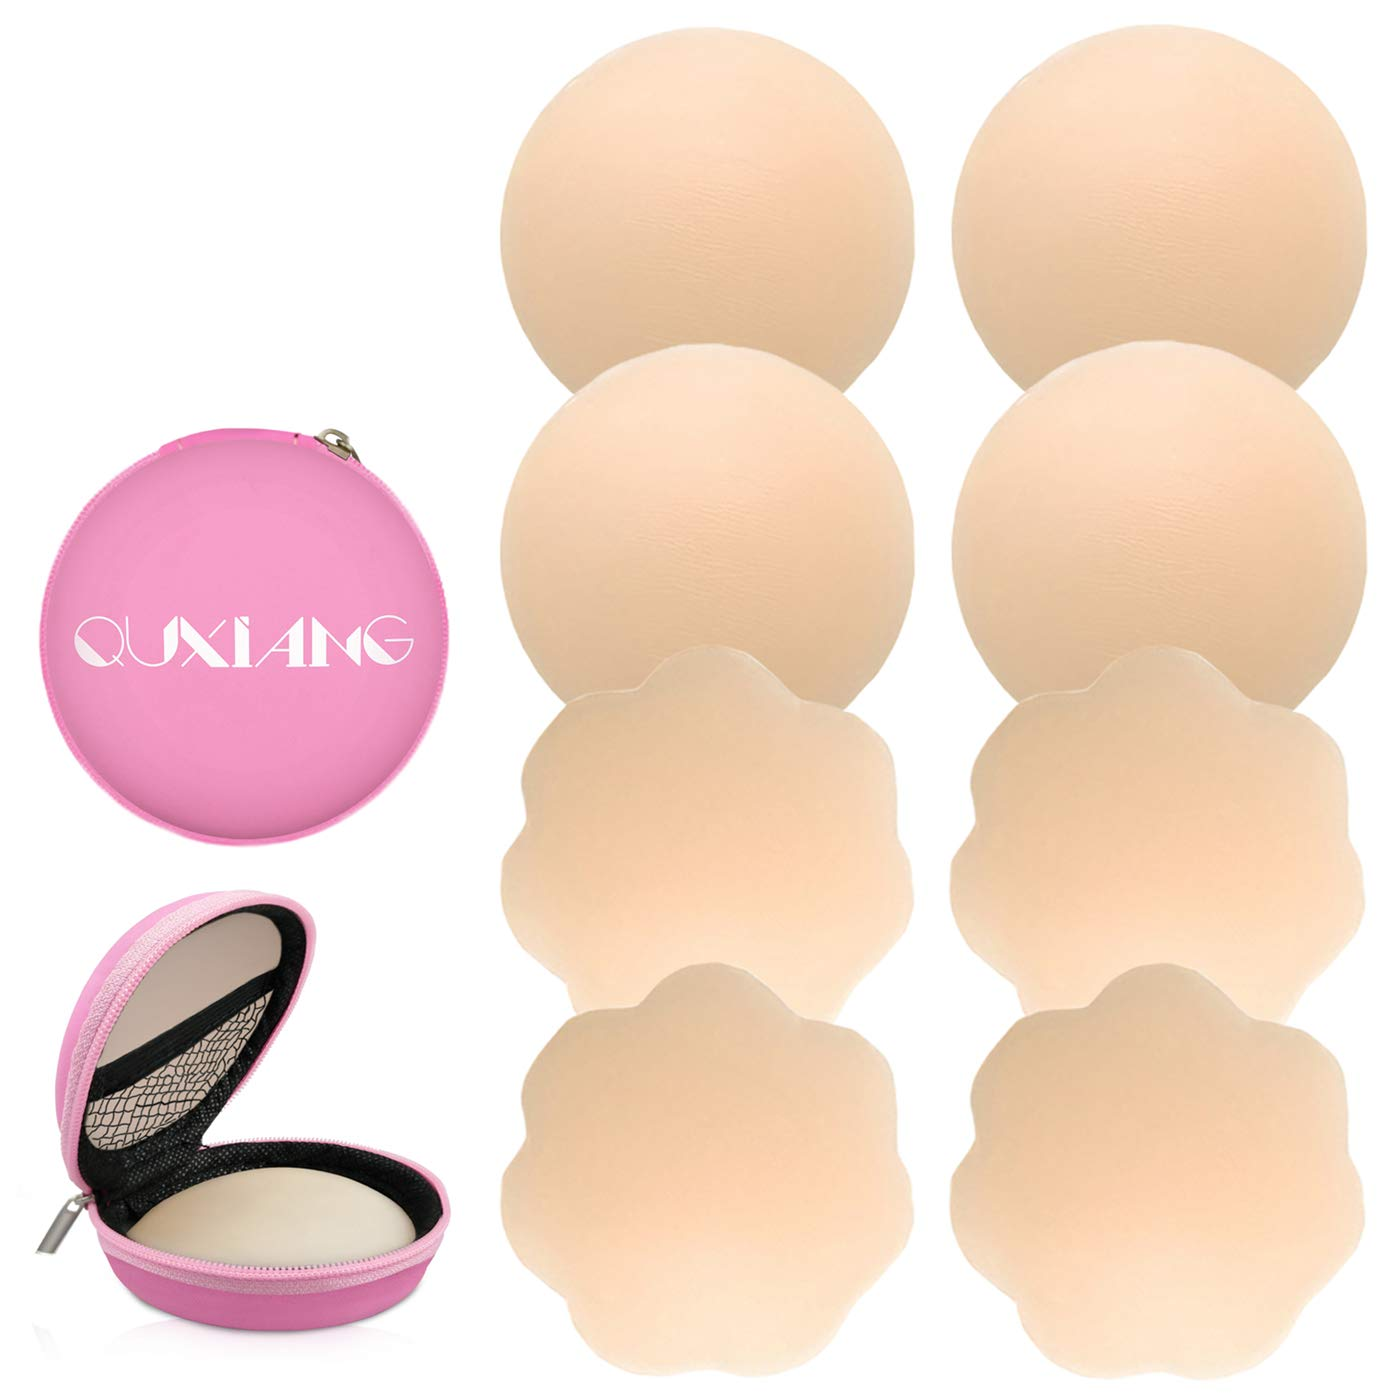 2 Round+2 Flower QUXIANG 4 Pairs Pasties Women Nipple Covers Reusable Adhesive Silicone Nippleless Covers